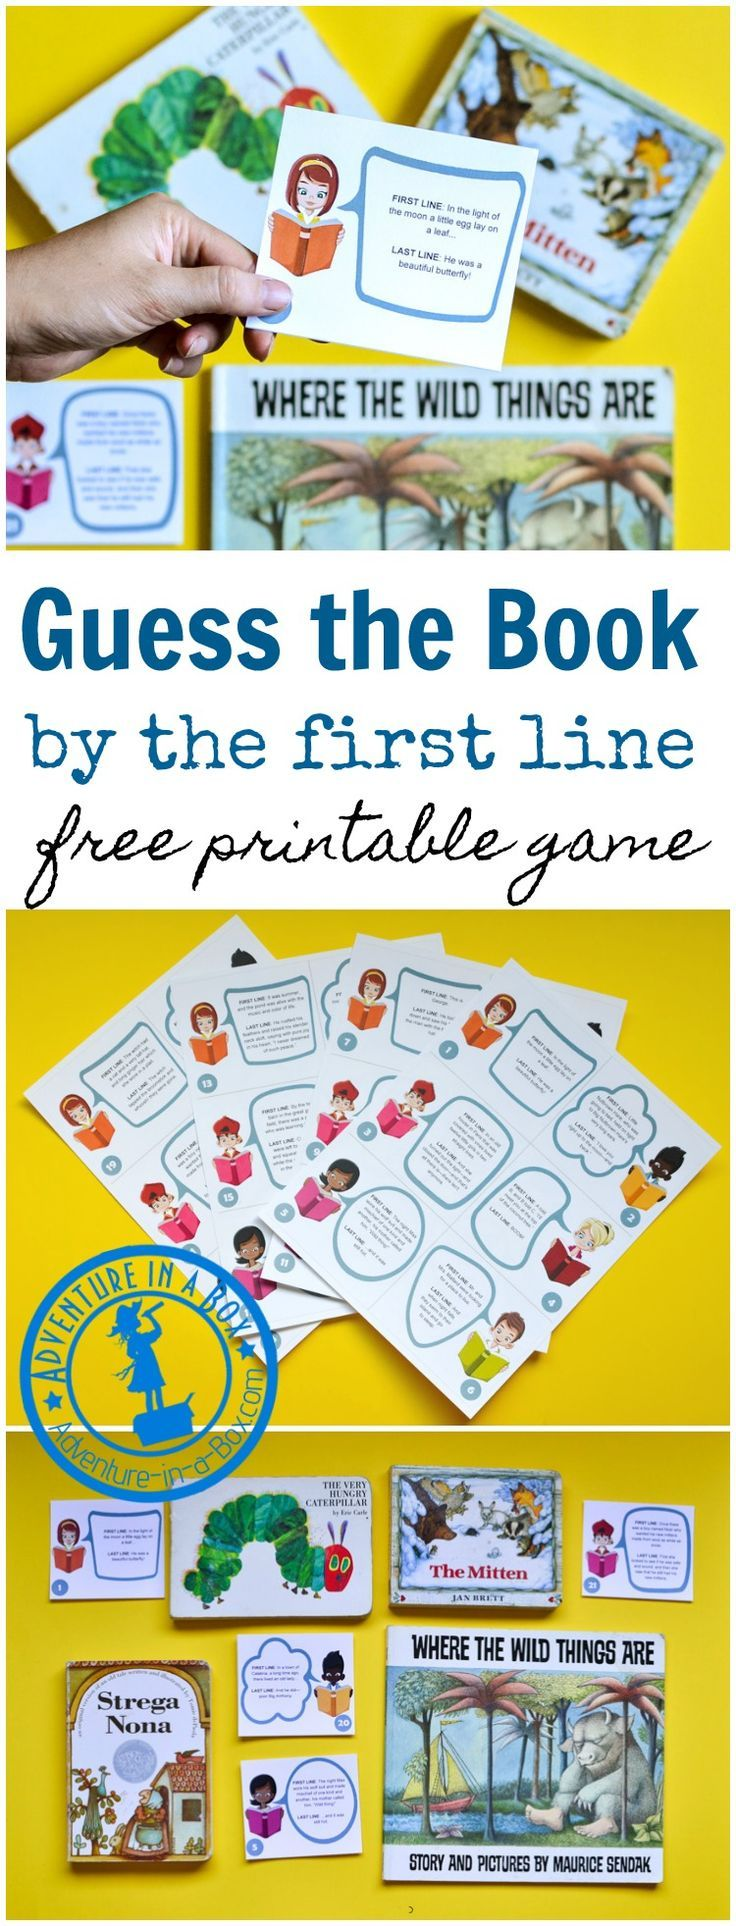 Uncategorized Printing Games For Kids 540 best homemade toys games images on pinterest dice guess the picture book by first line is a free printable game for kids who